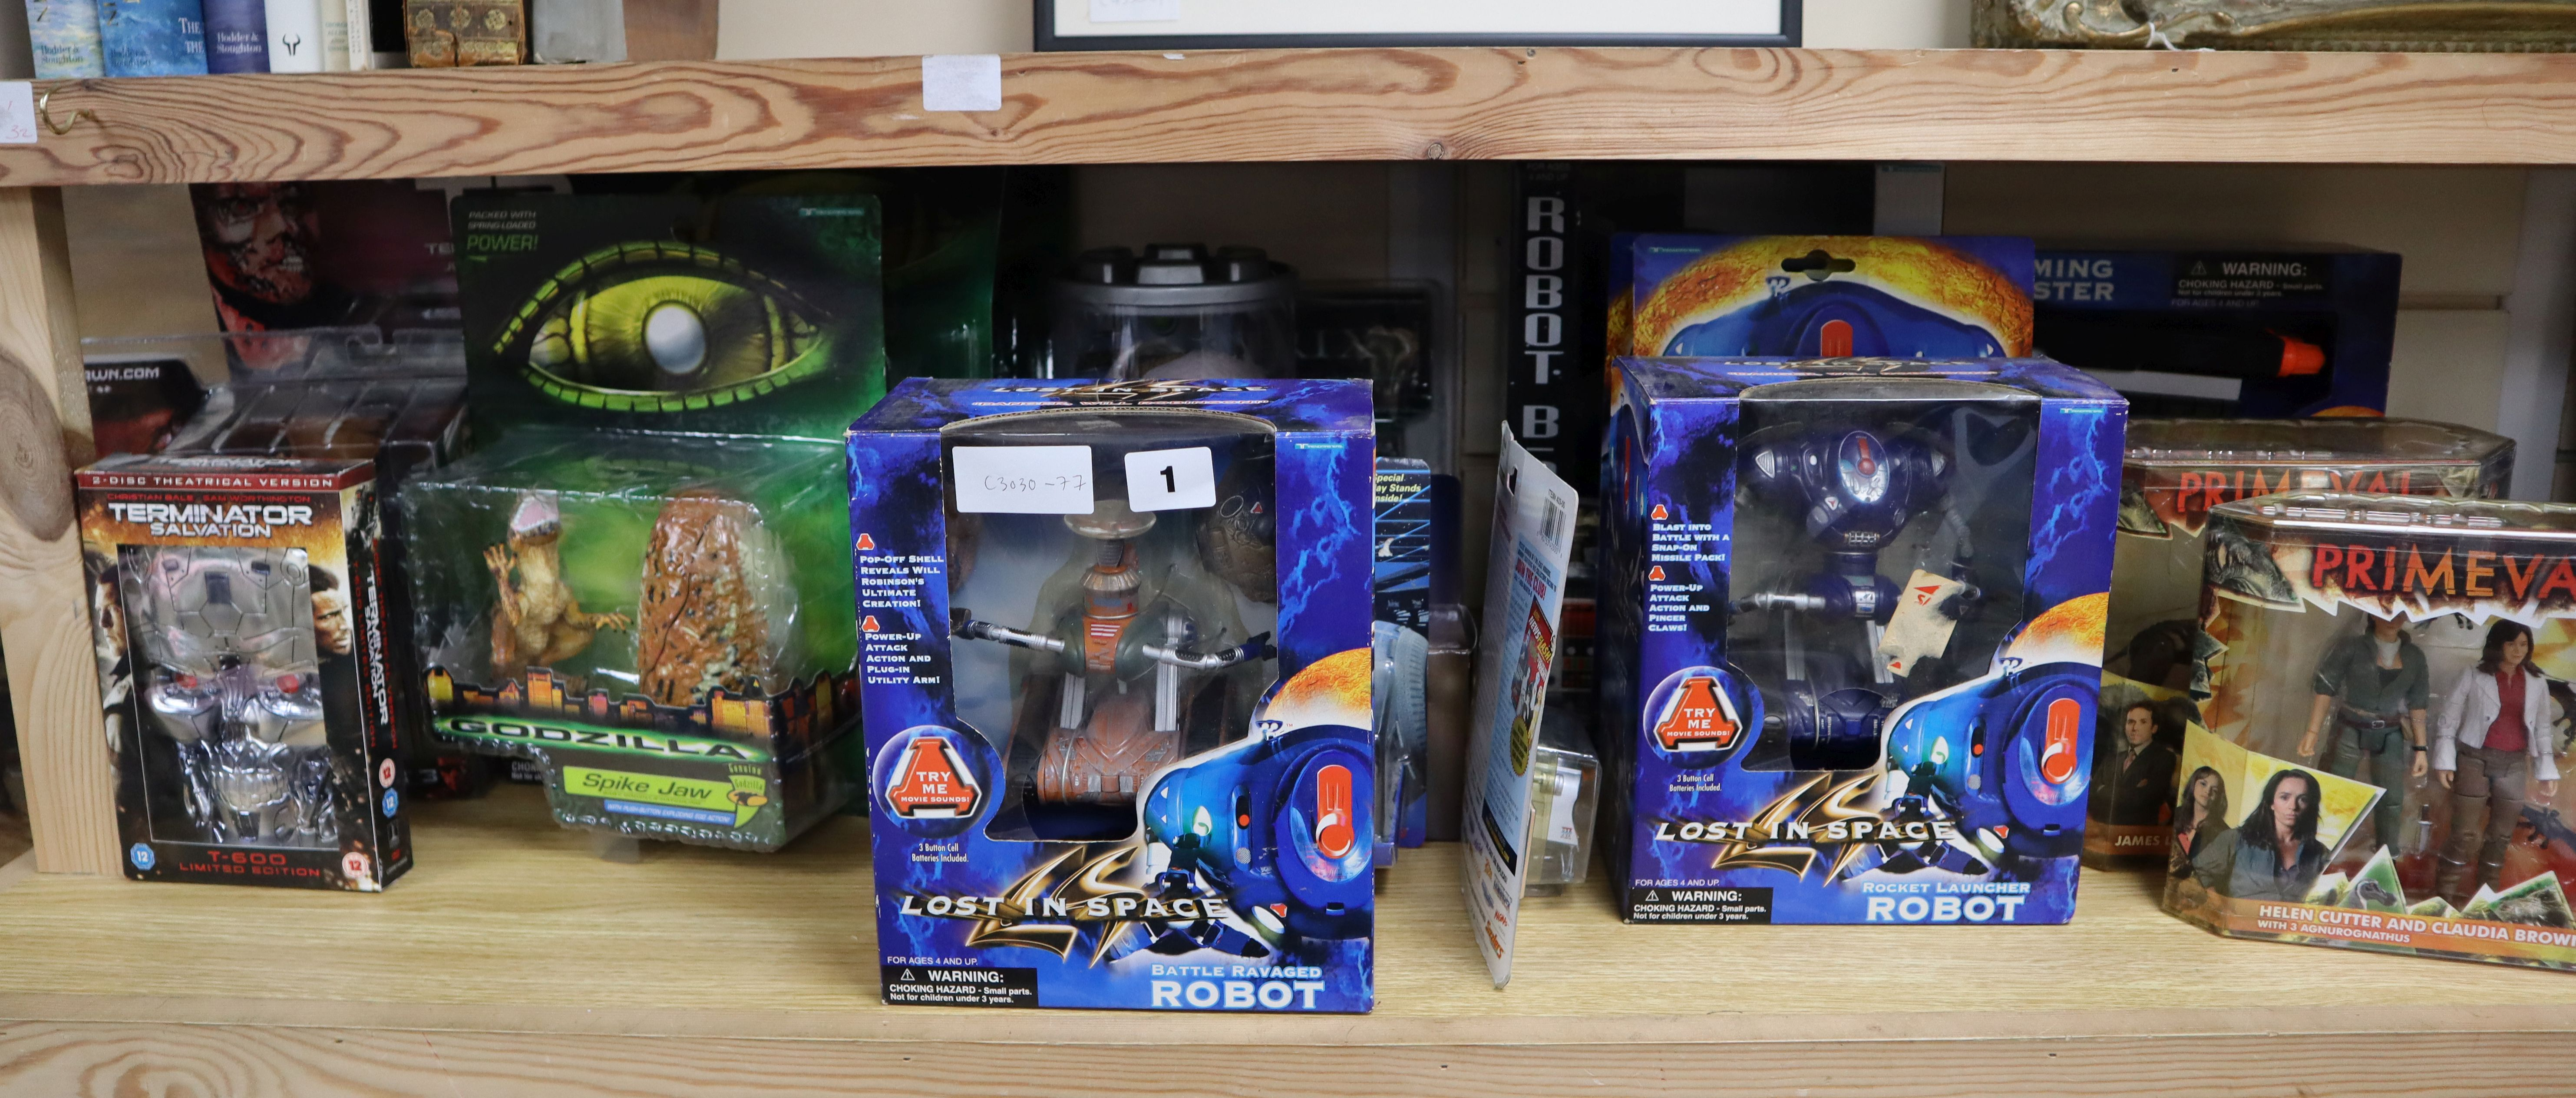 Lot 1 - Sci-Fi movie and TV action figures and scale models, including Lost in Space, Terminator 2,